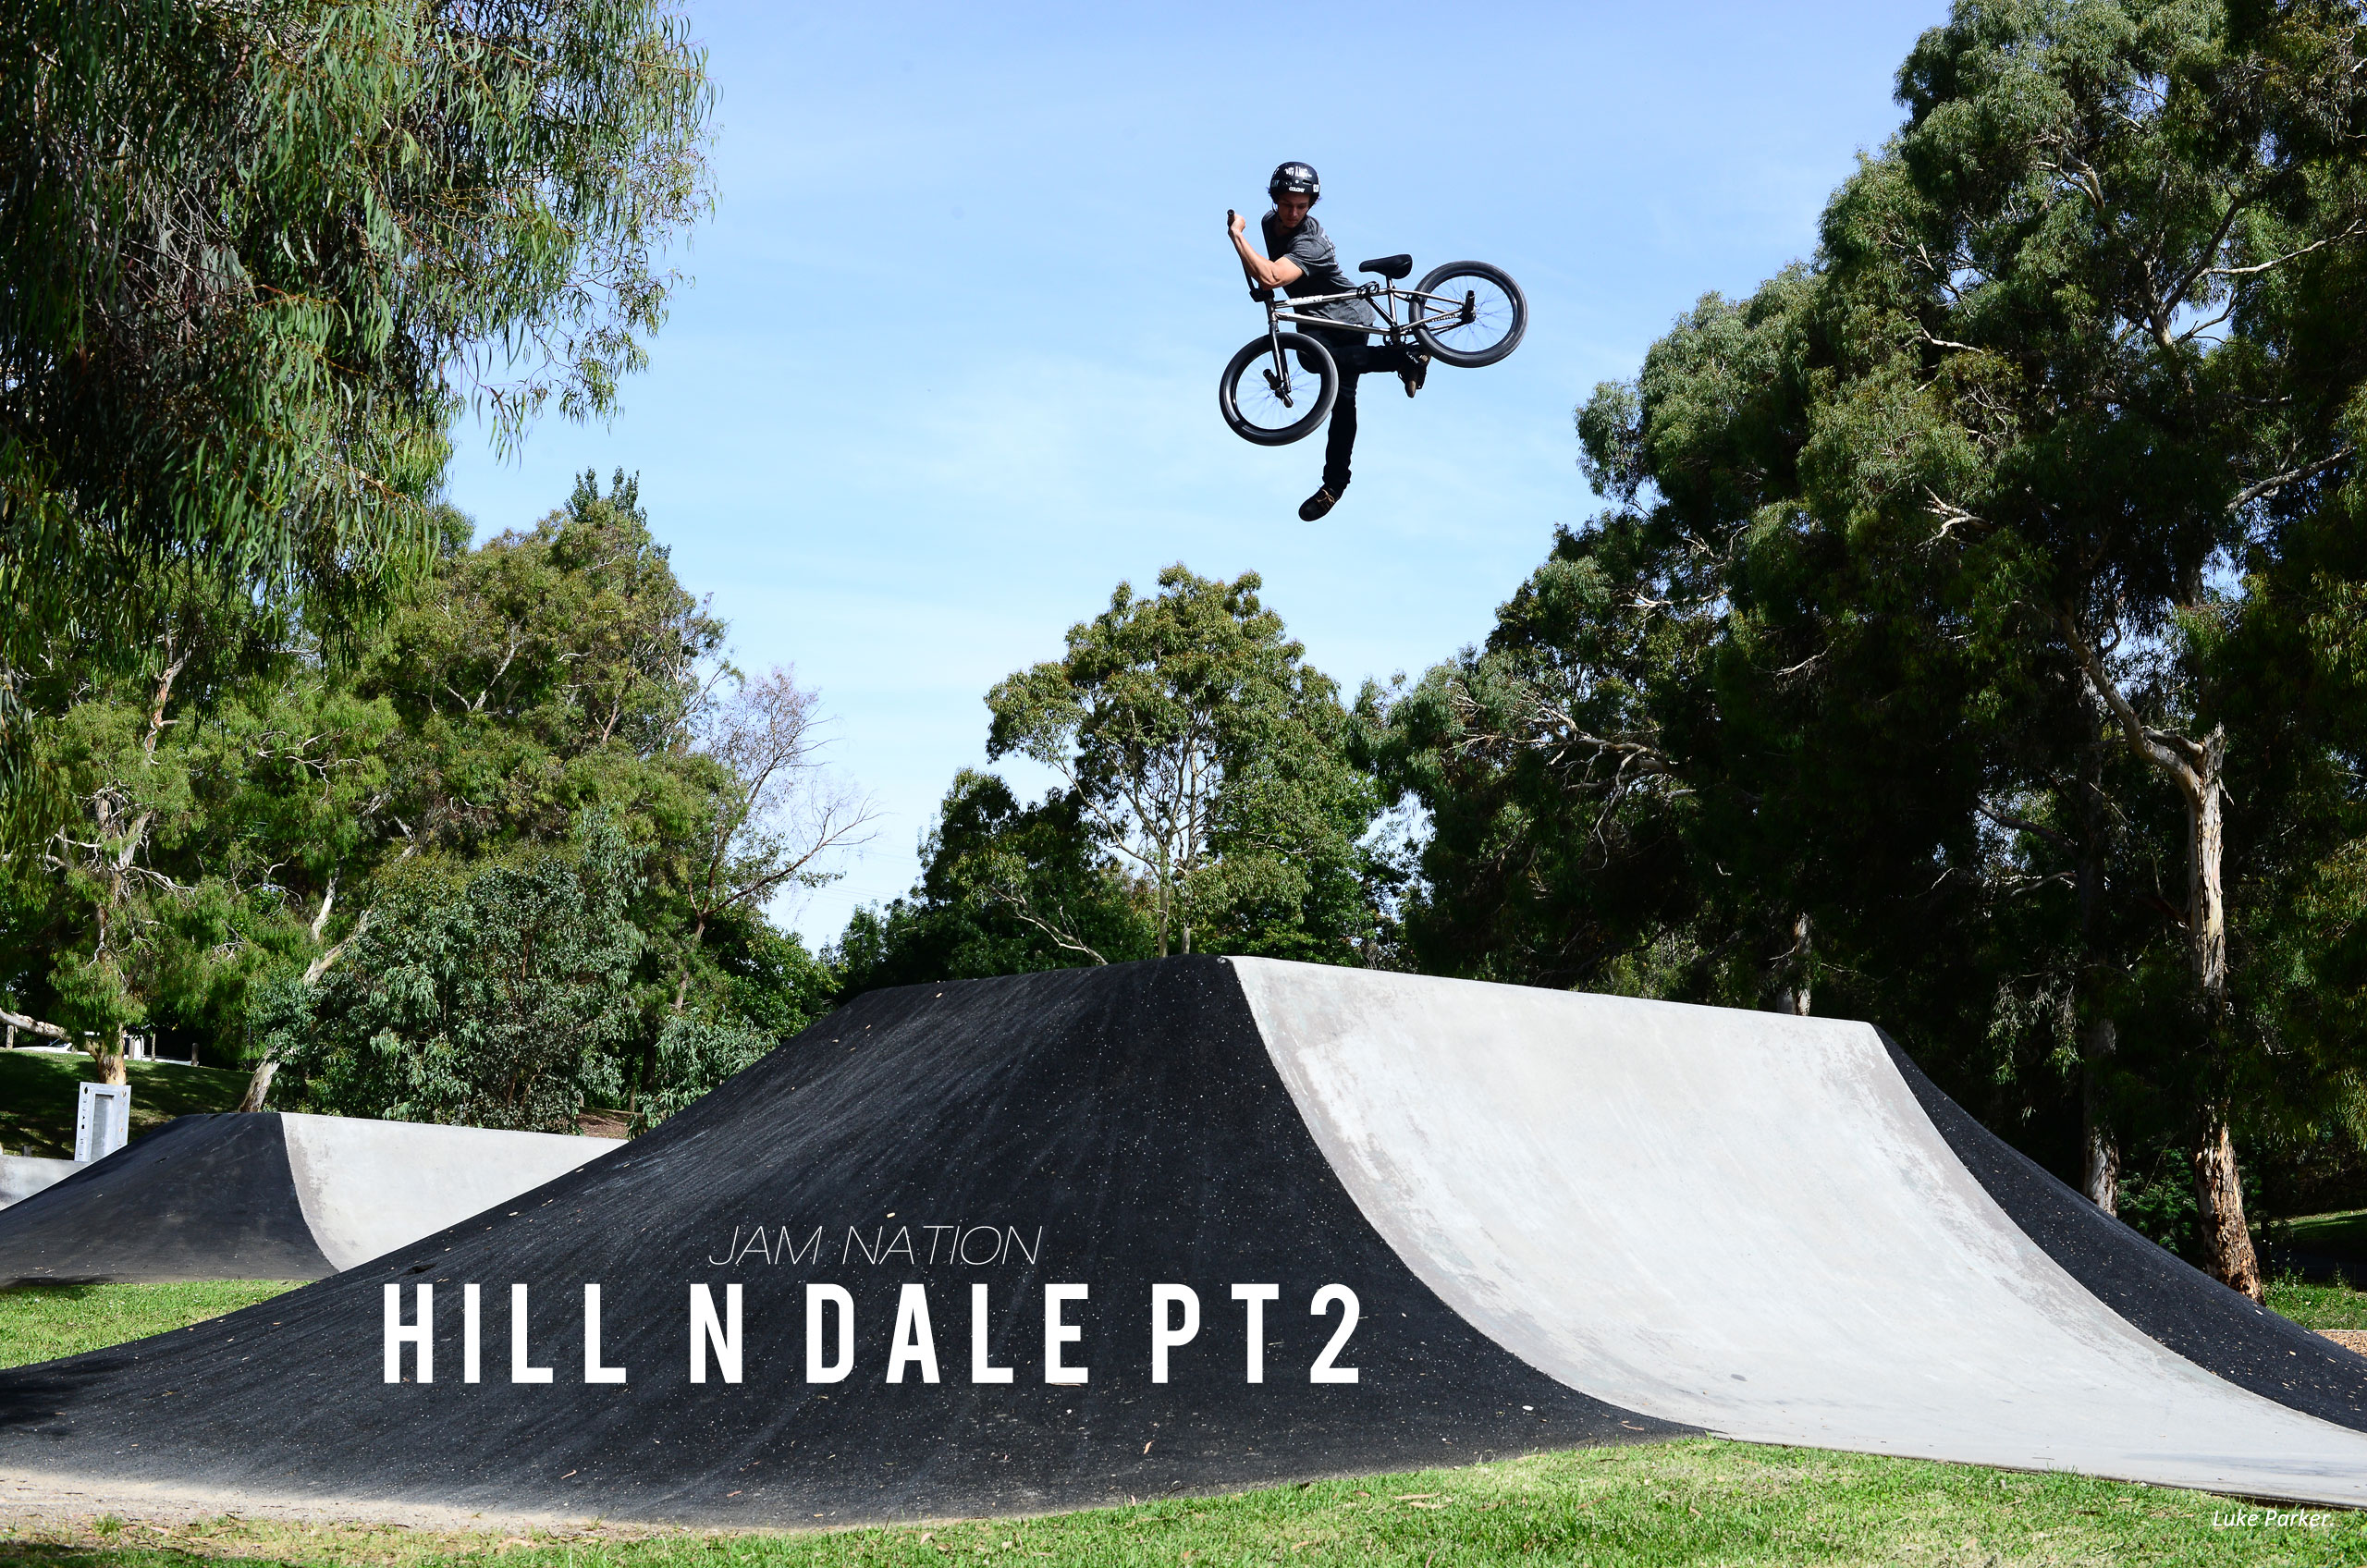 Jamnation – Hill n Dale PT2